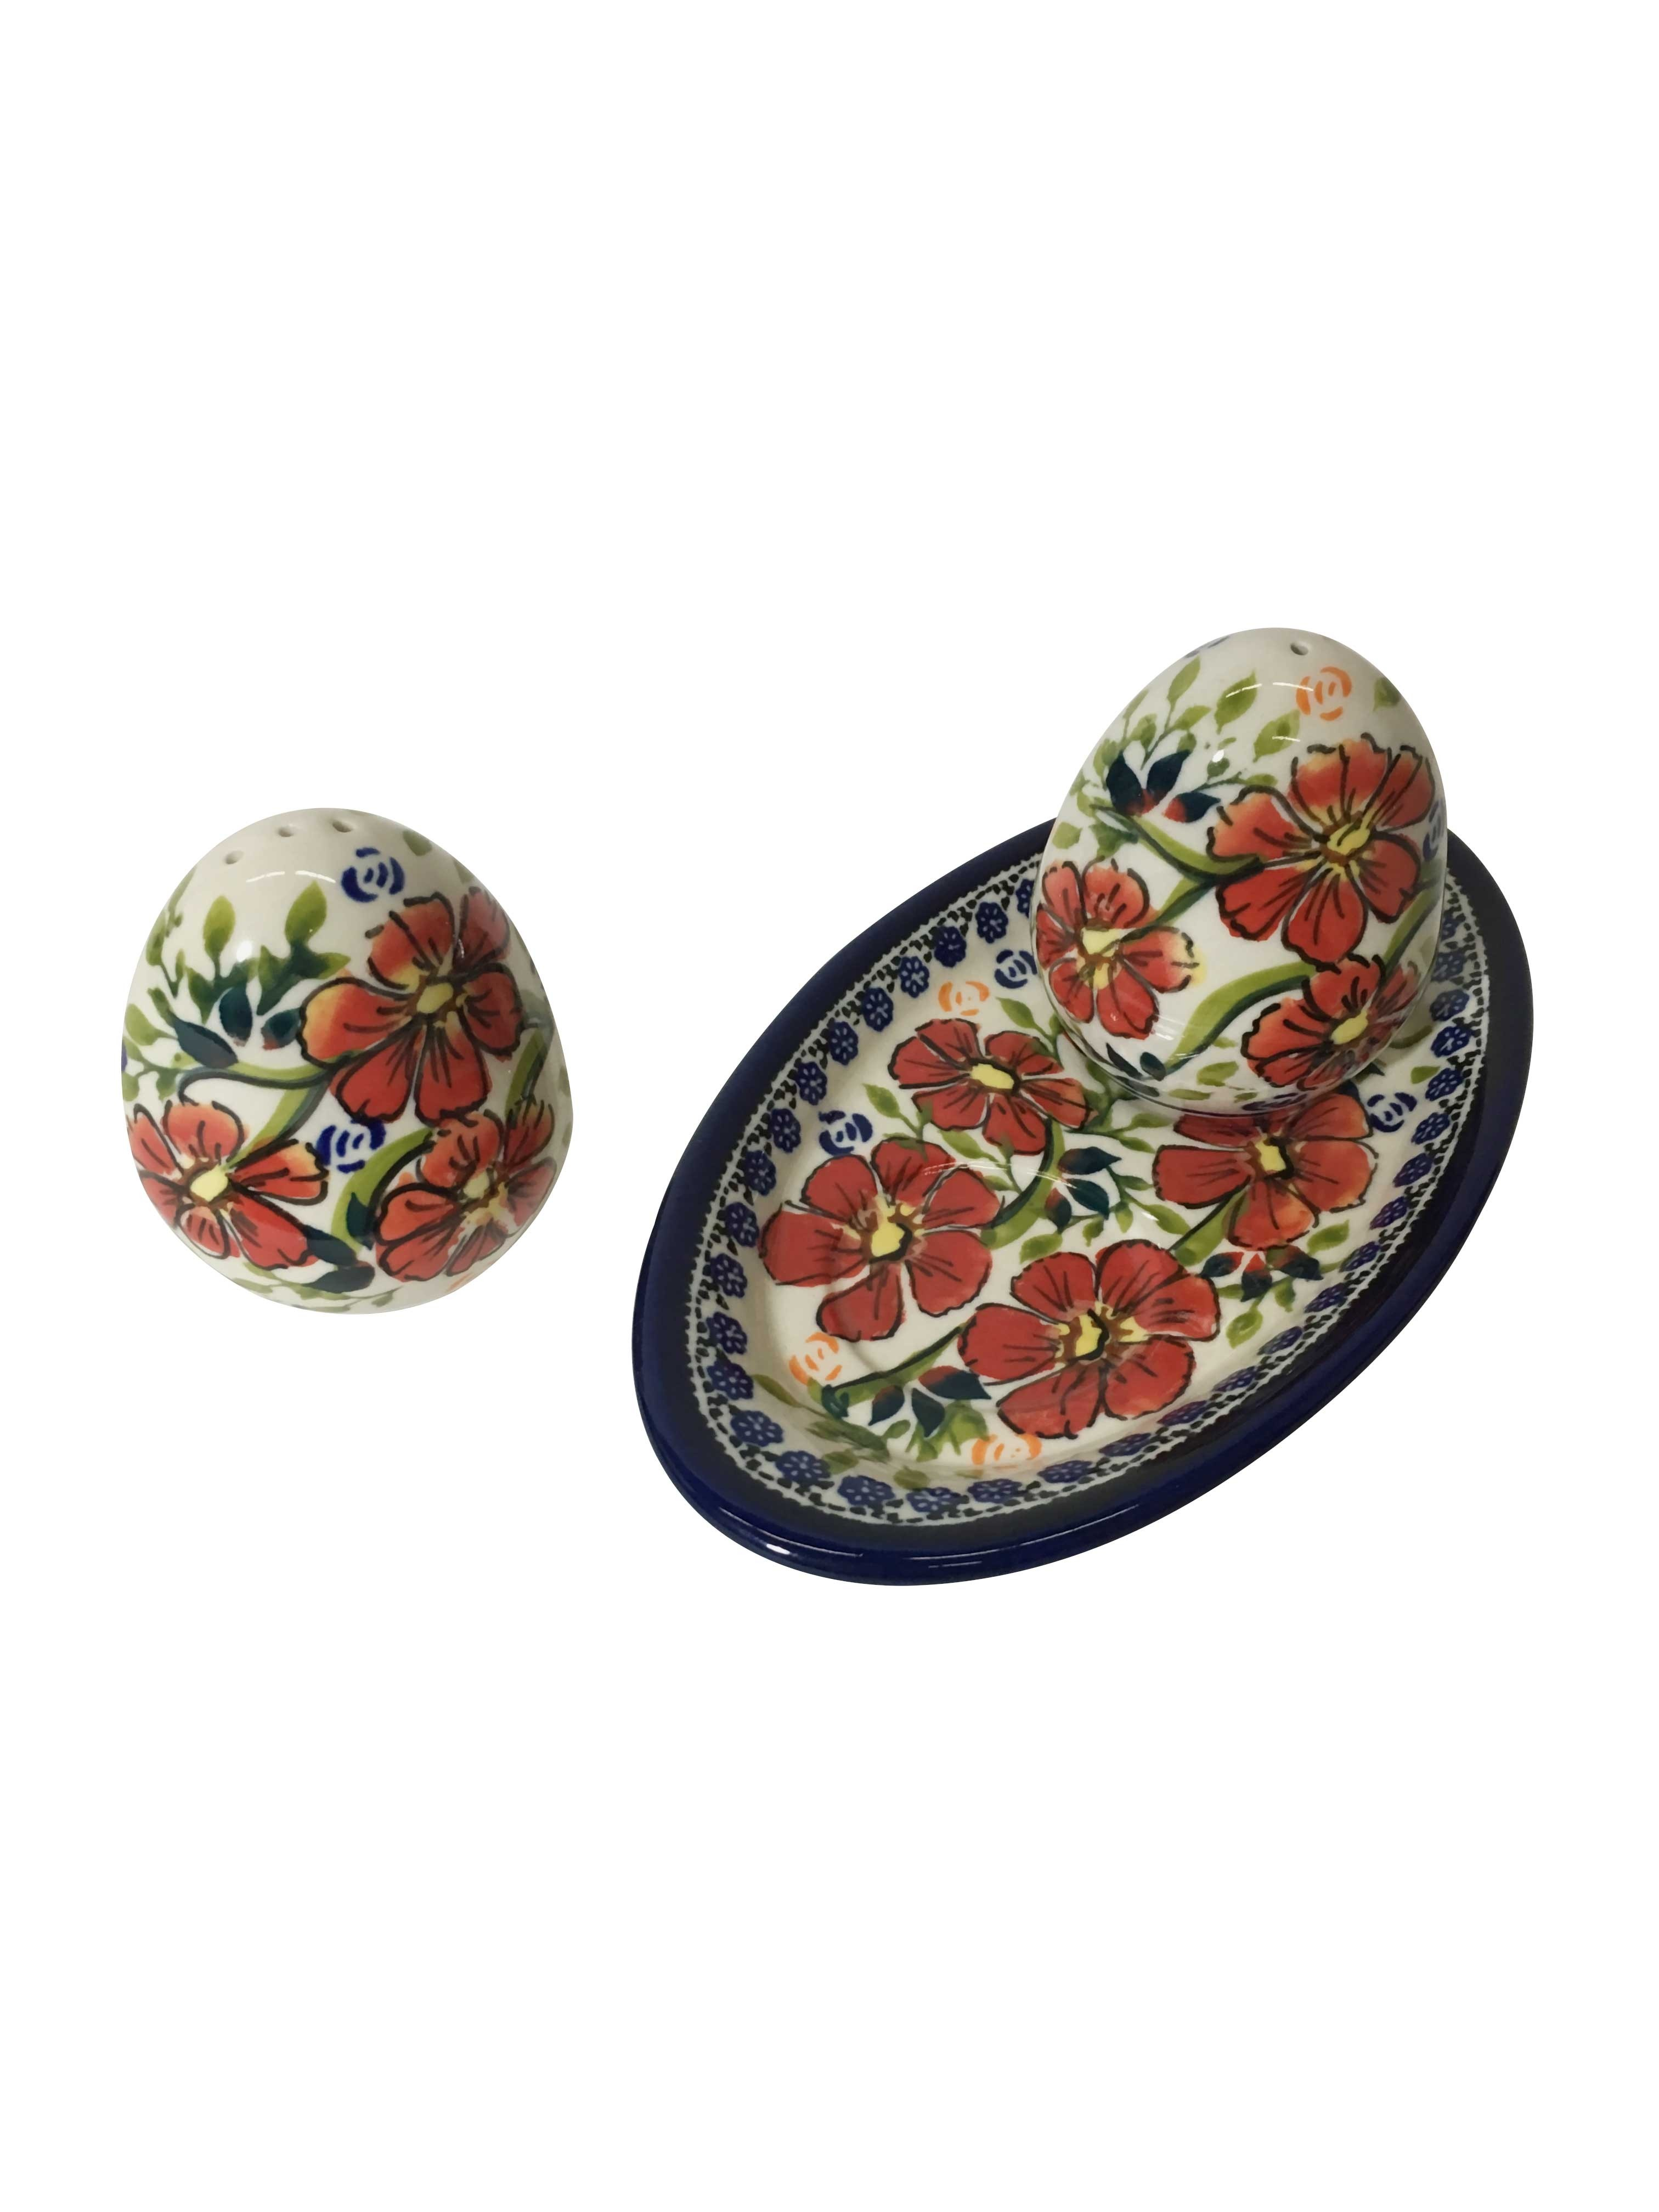 Pottery Avenue Love Blossoms 3pc Stoneware Salt and Pepper Trio Set - 962-961-252EX